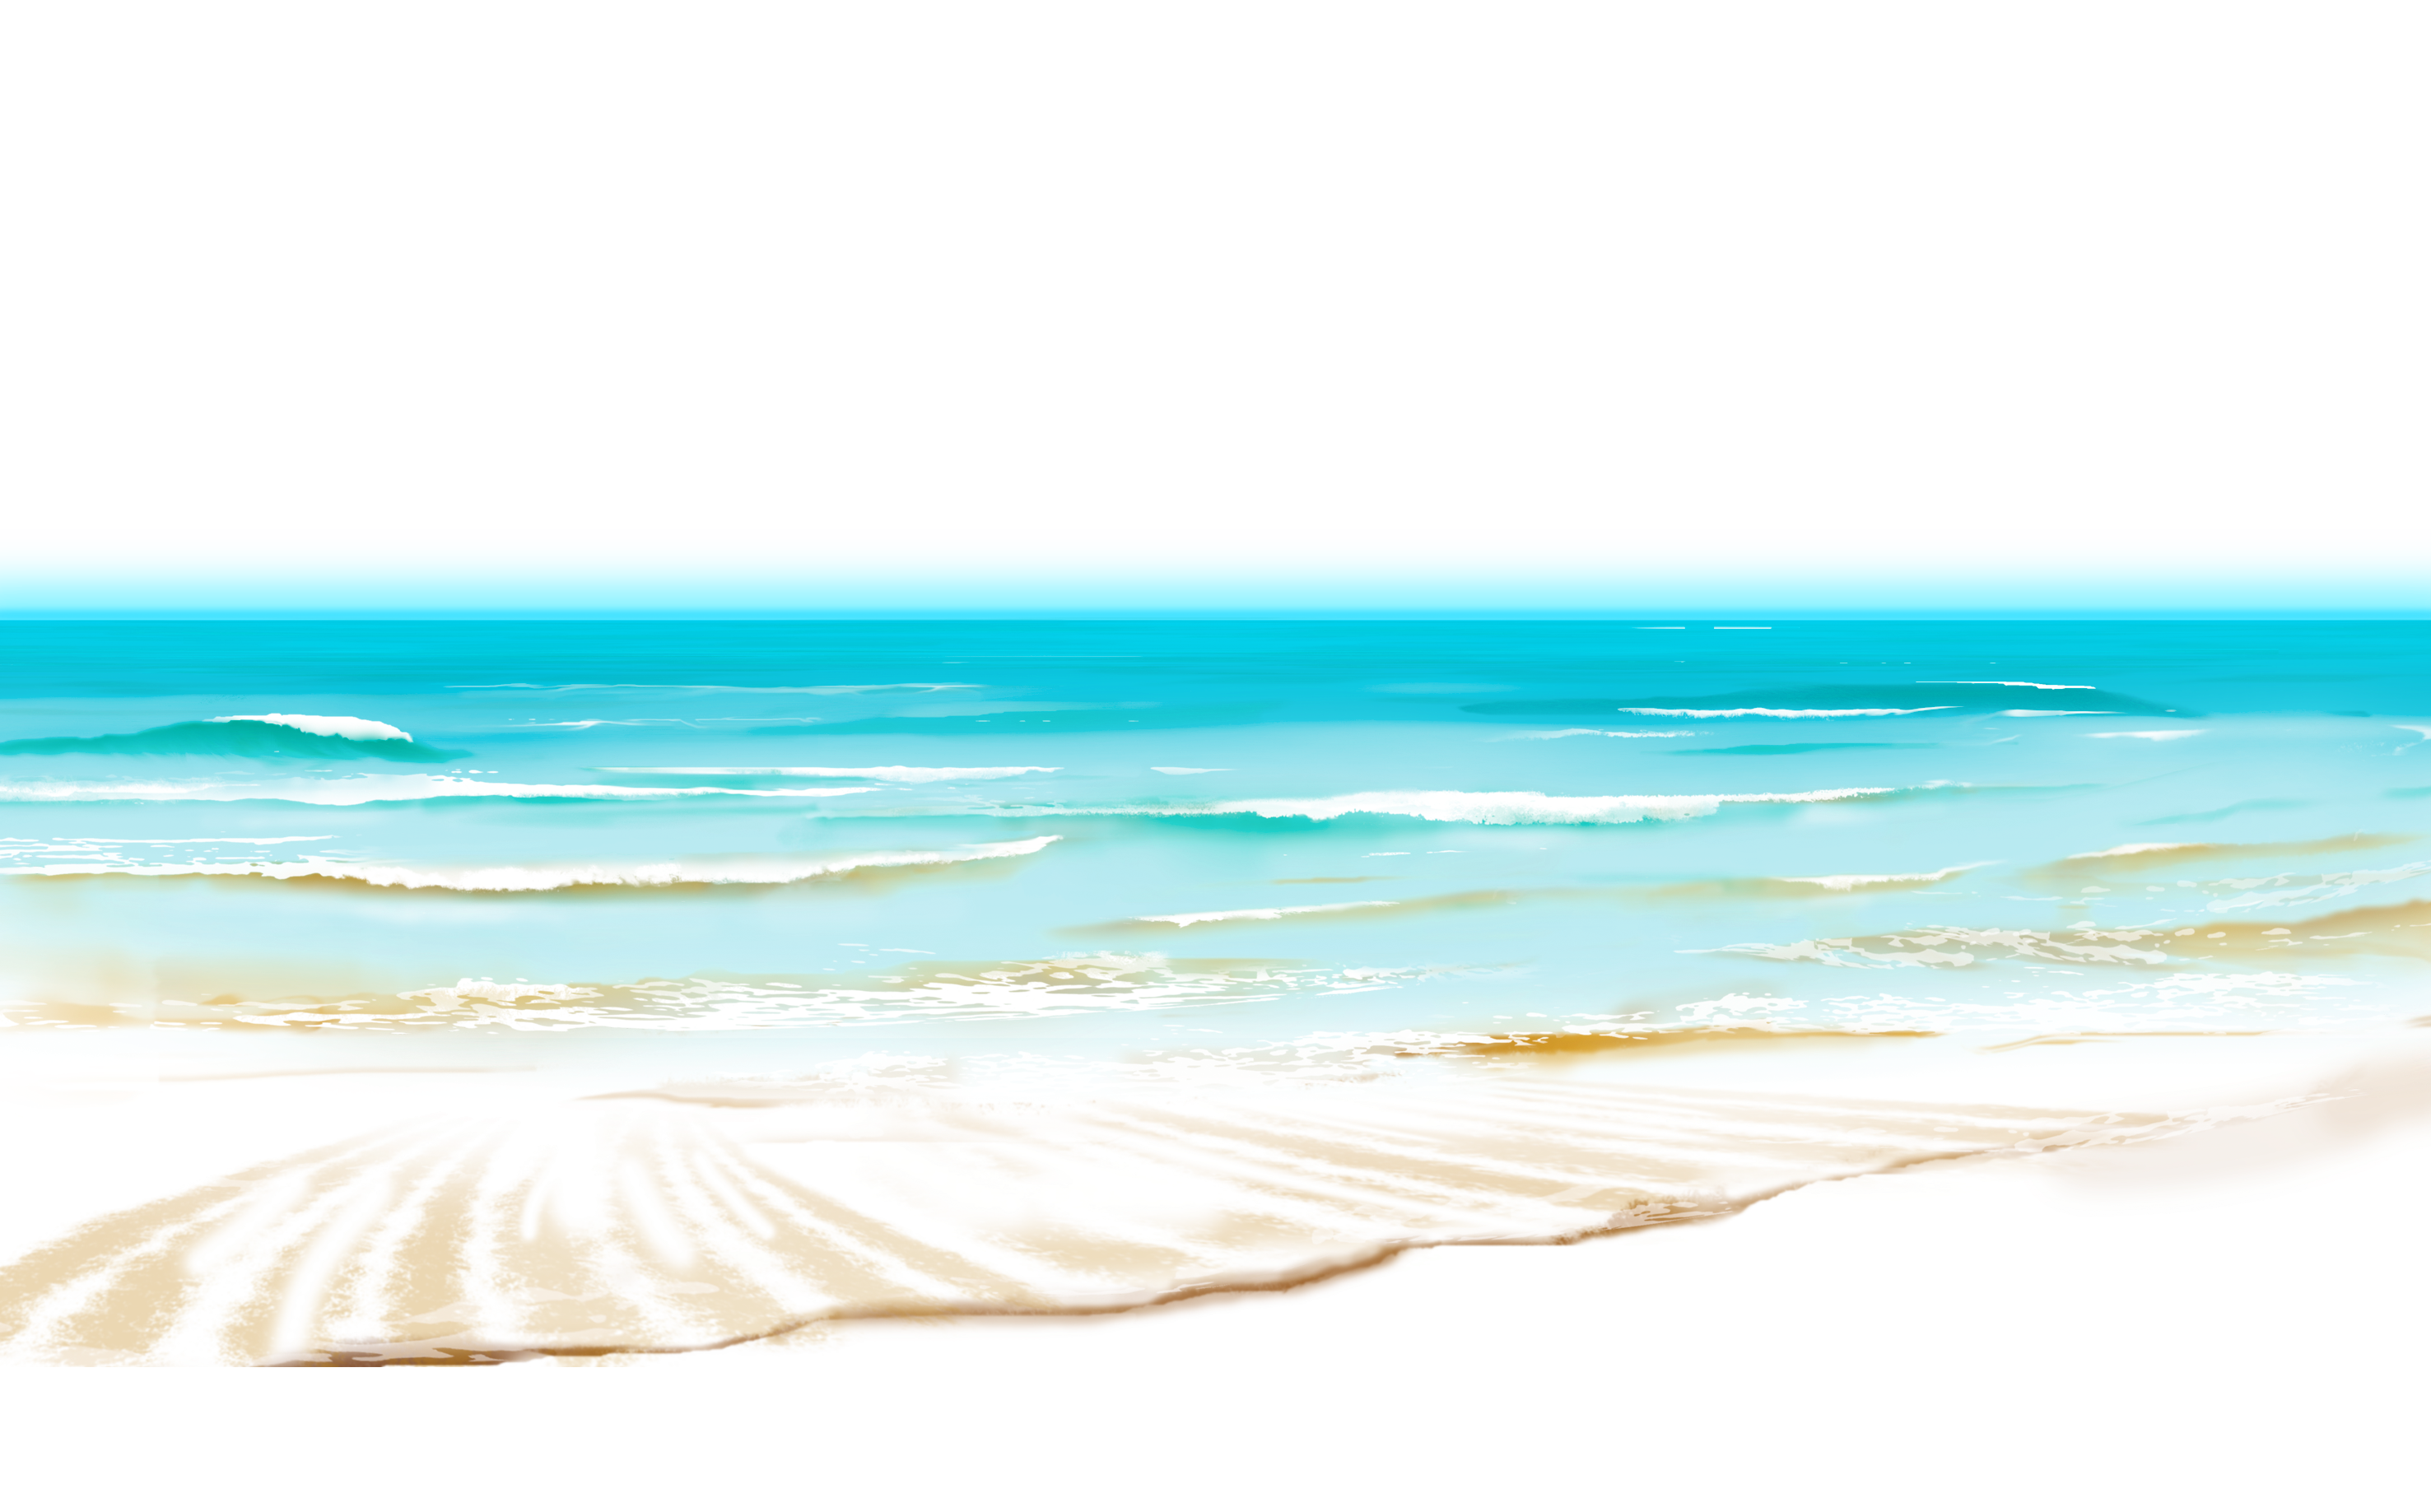 Beach background png. Sea ground clipart gallery